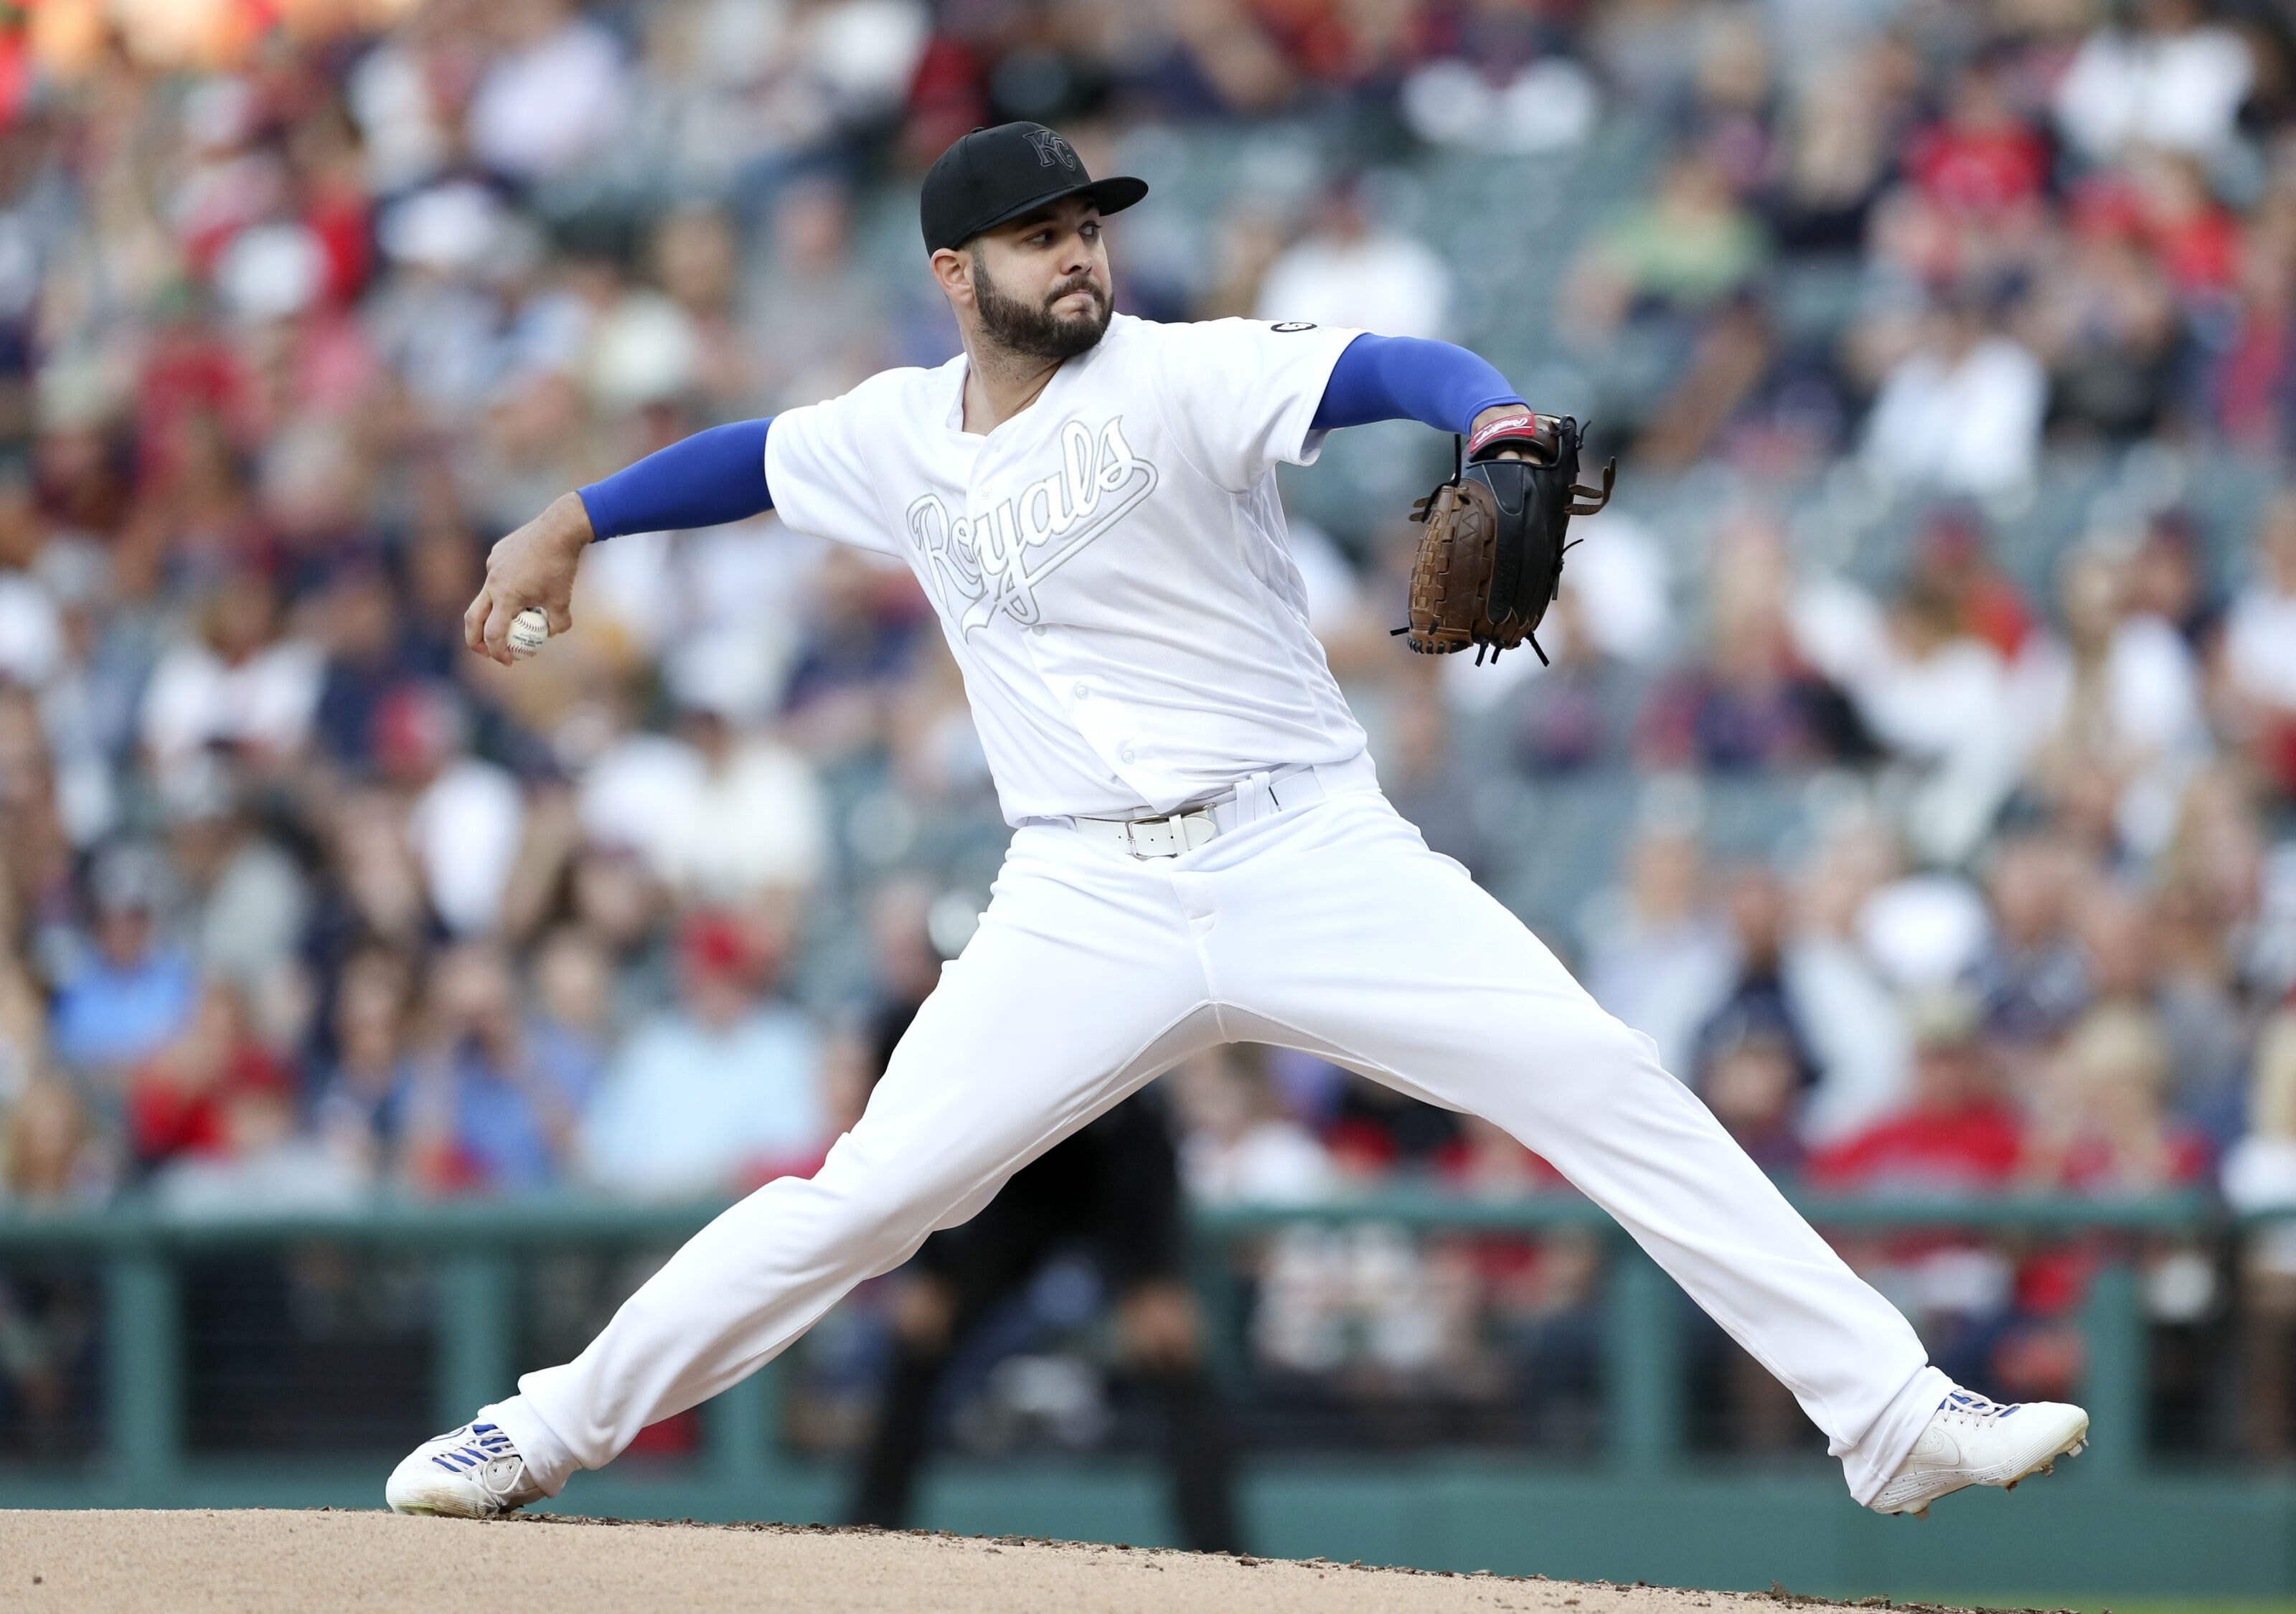 Kansas City Royals: Jake Junis roughed up by Indians again